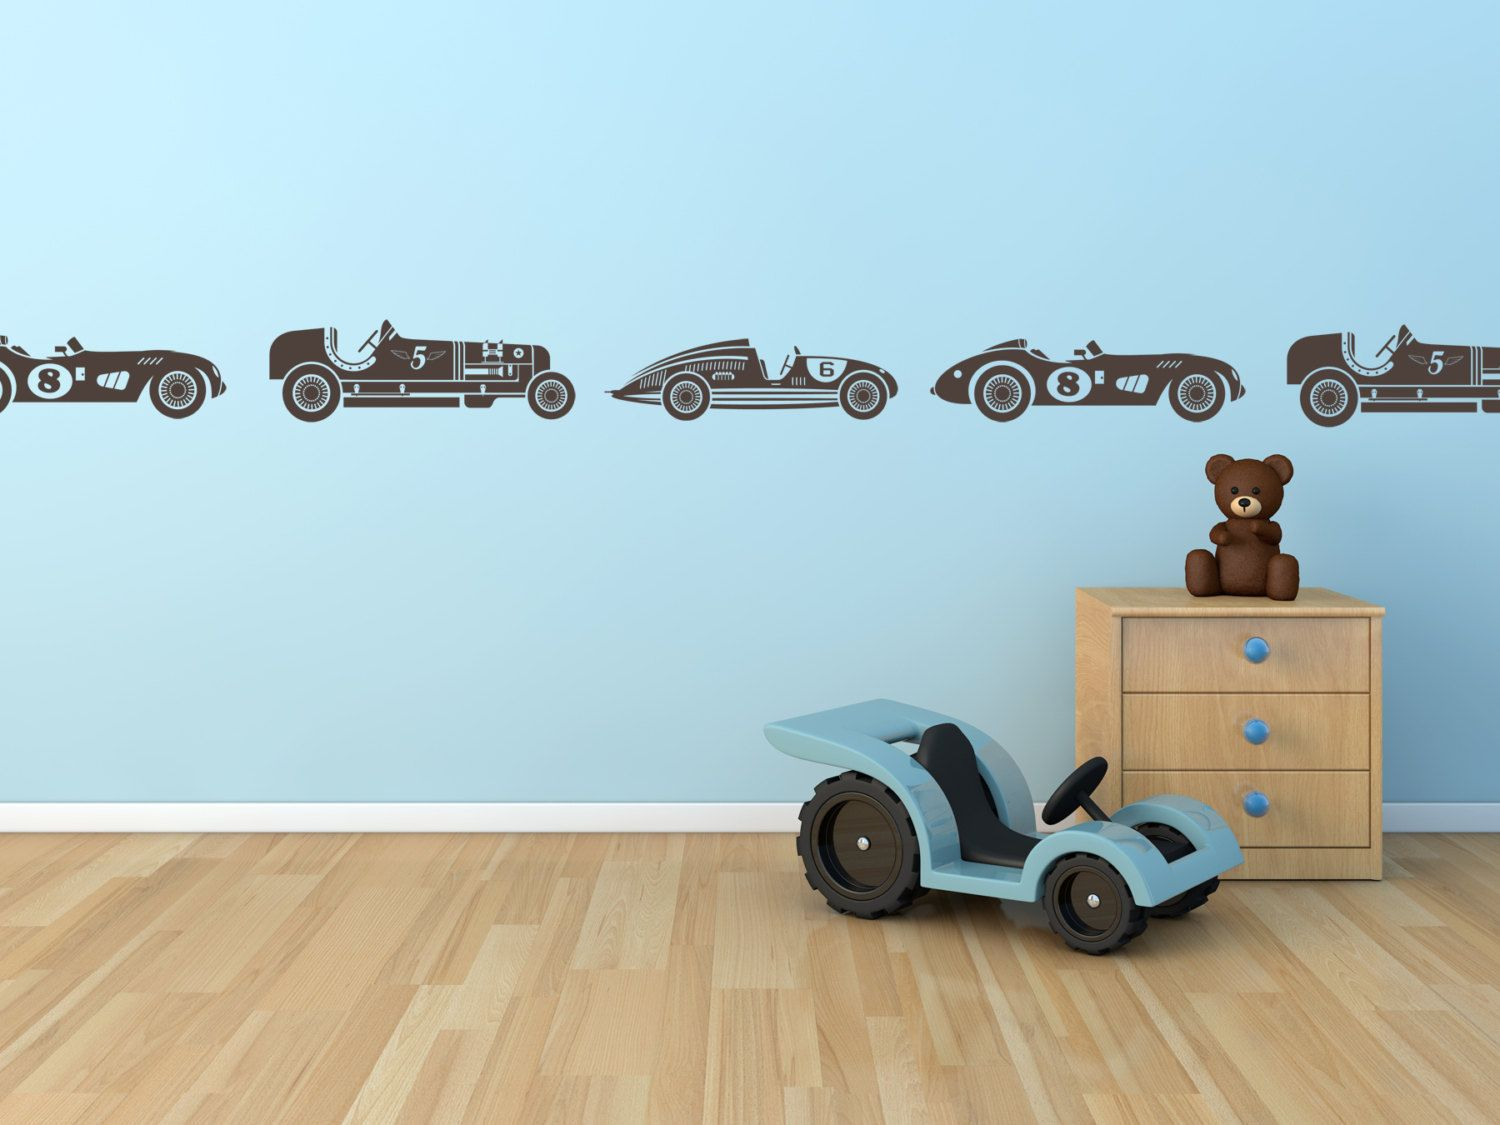 Vintage Race Cars For Boys Border Or Childs Room By StickerHog - Wall decals carsracing car wall decal ideas for the kids pinterest wall